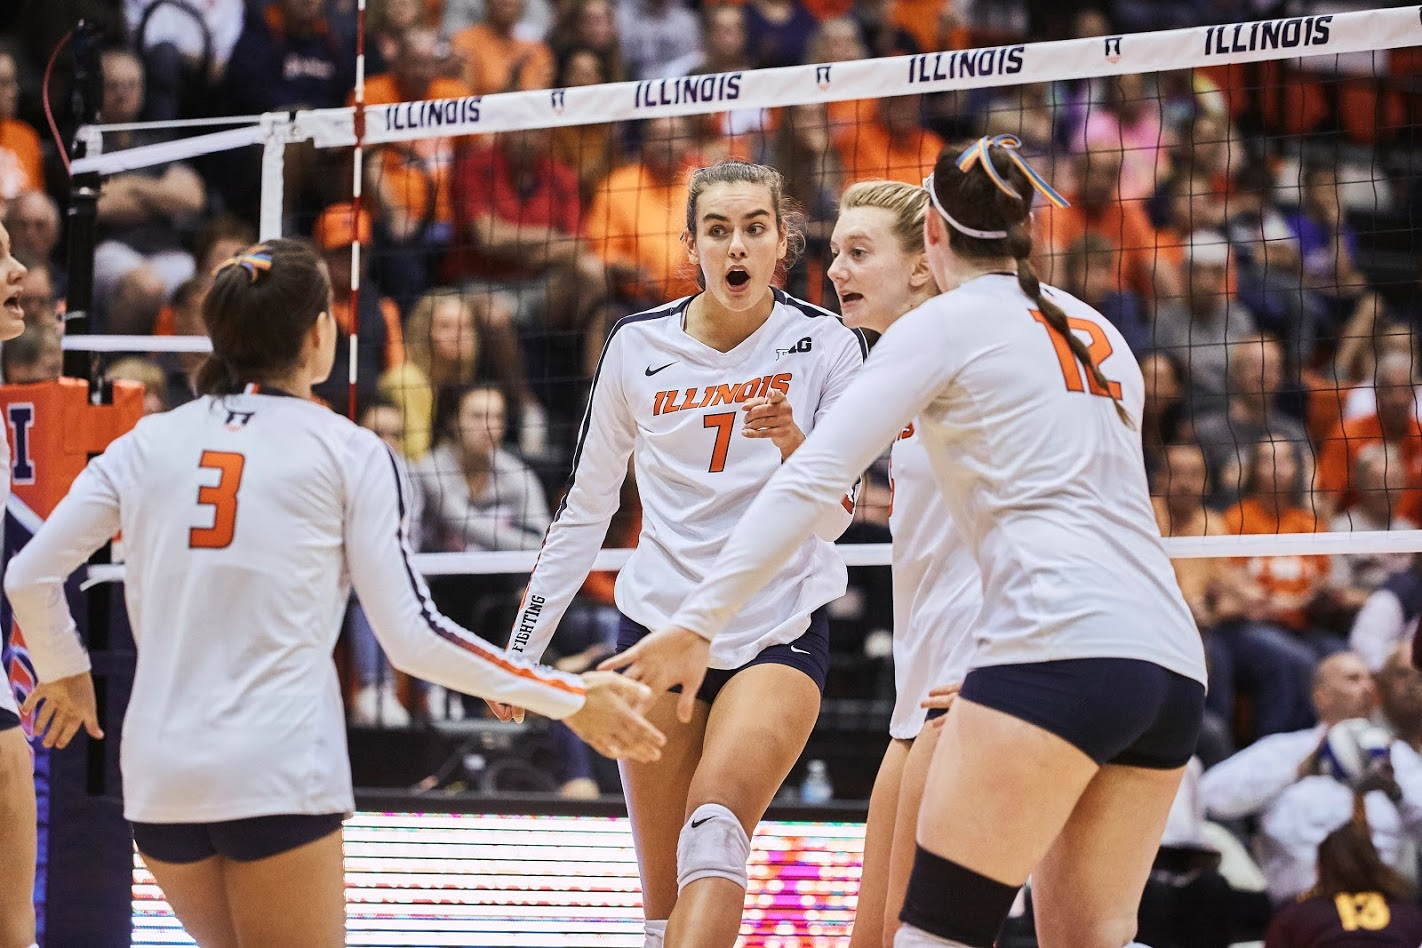 Jacqueline Quade celebrates with the Illini Volleyball team after scoring a point at Huff Hall vs Minnesota on Oct. 9. Illinois lost to Penn State on Wednesday, 3-2.